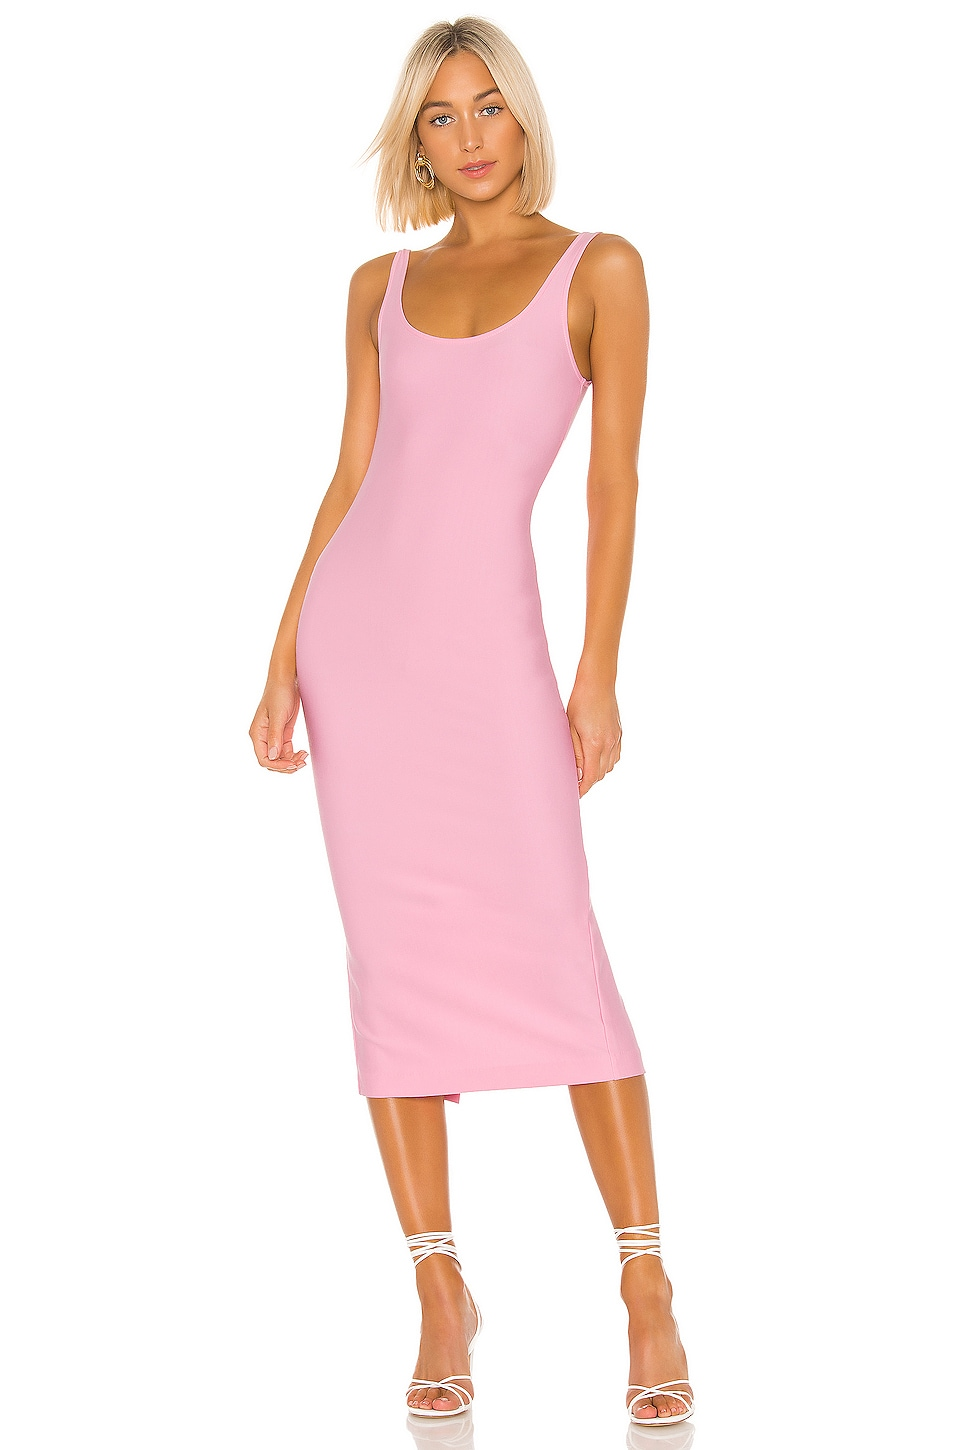 LPA Deangela Dress in Baby Pink